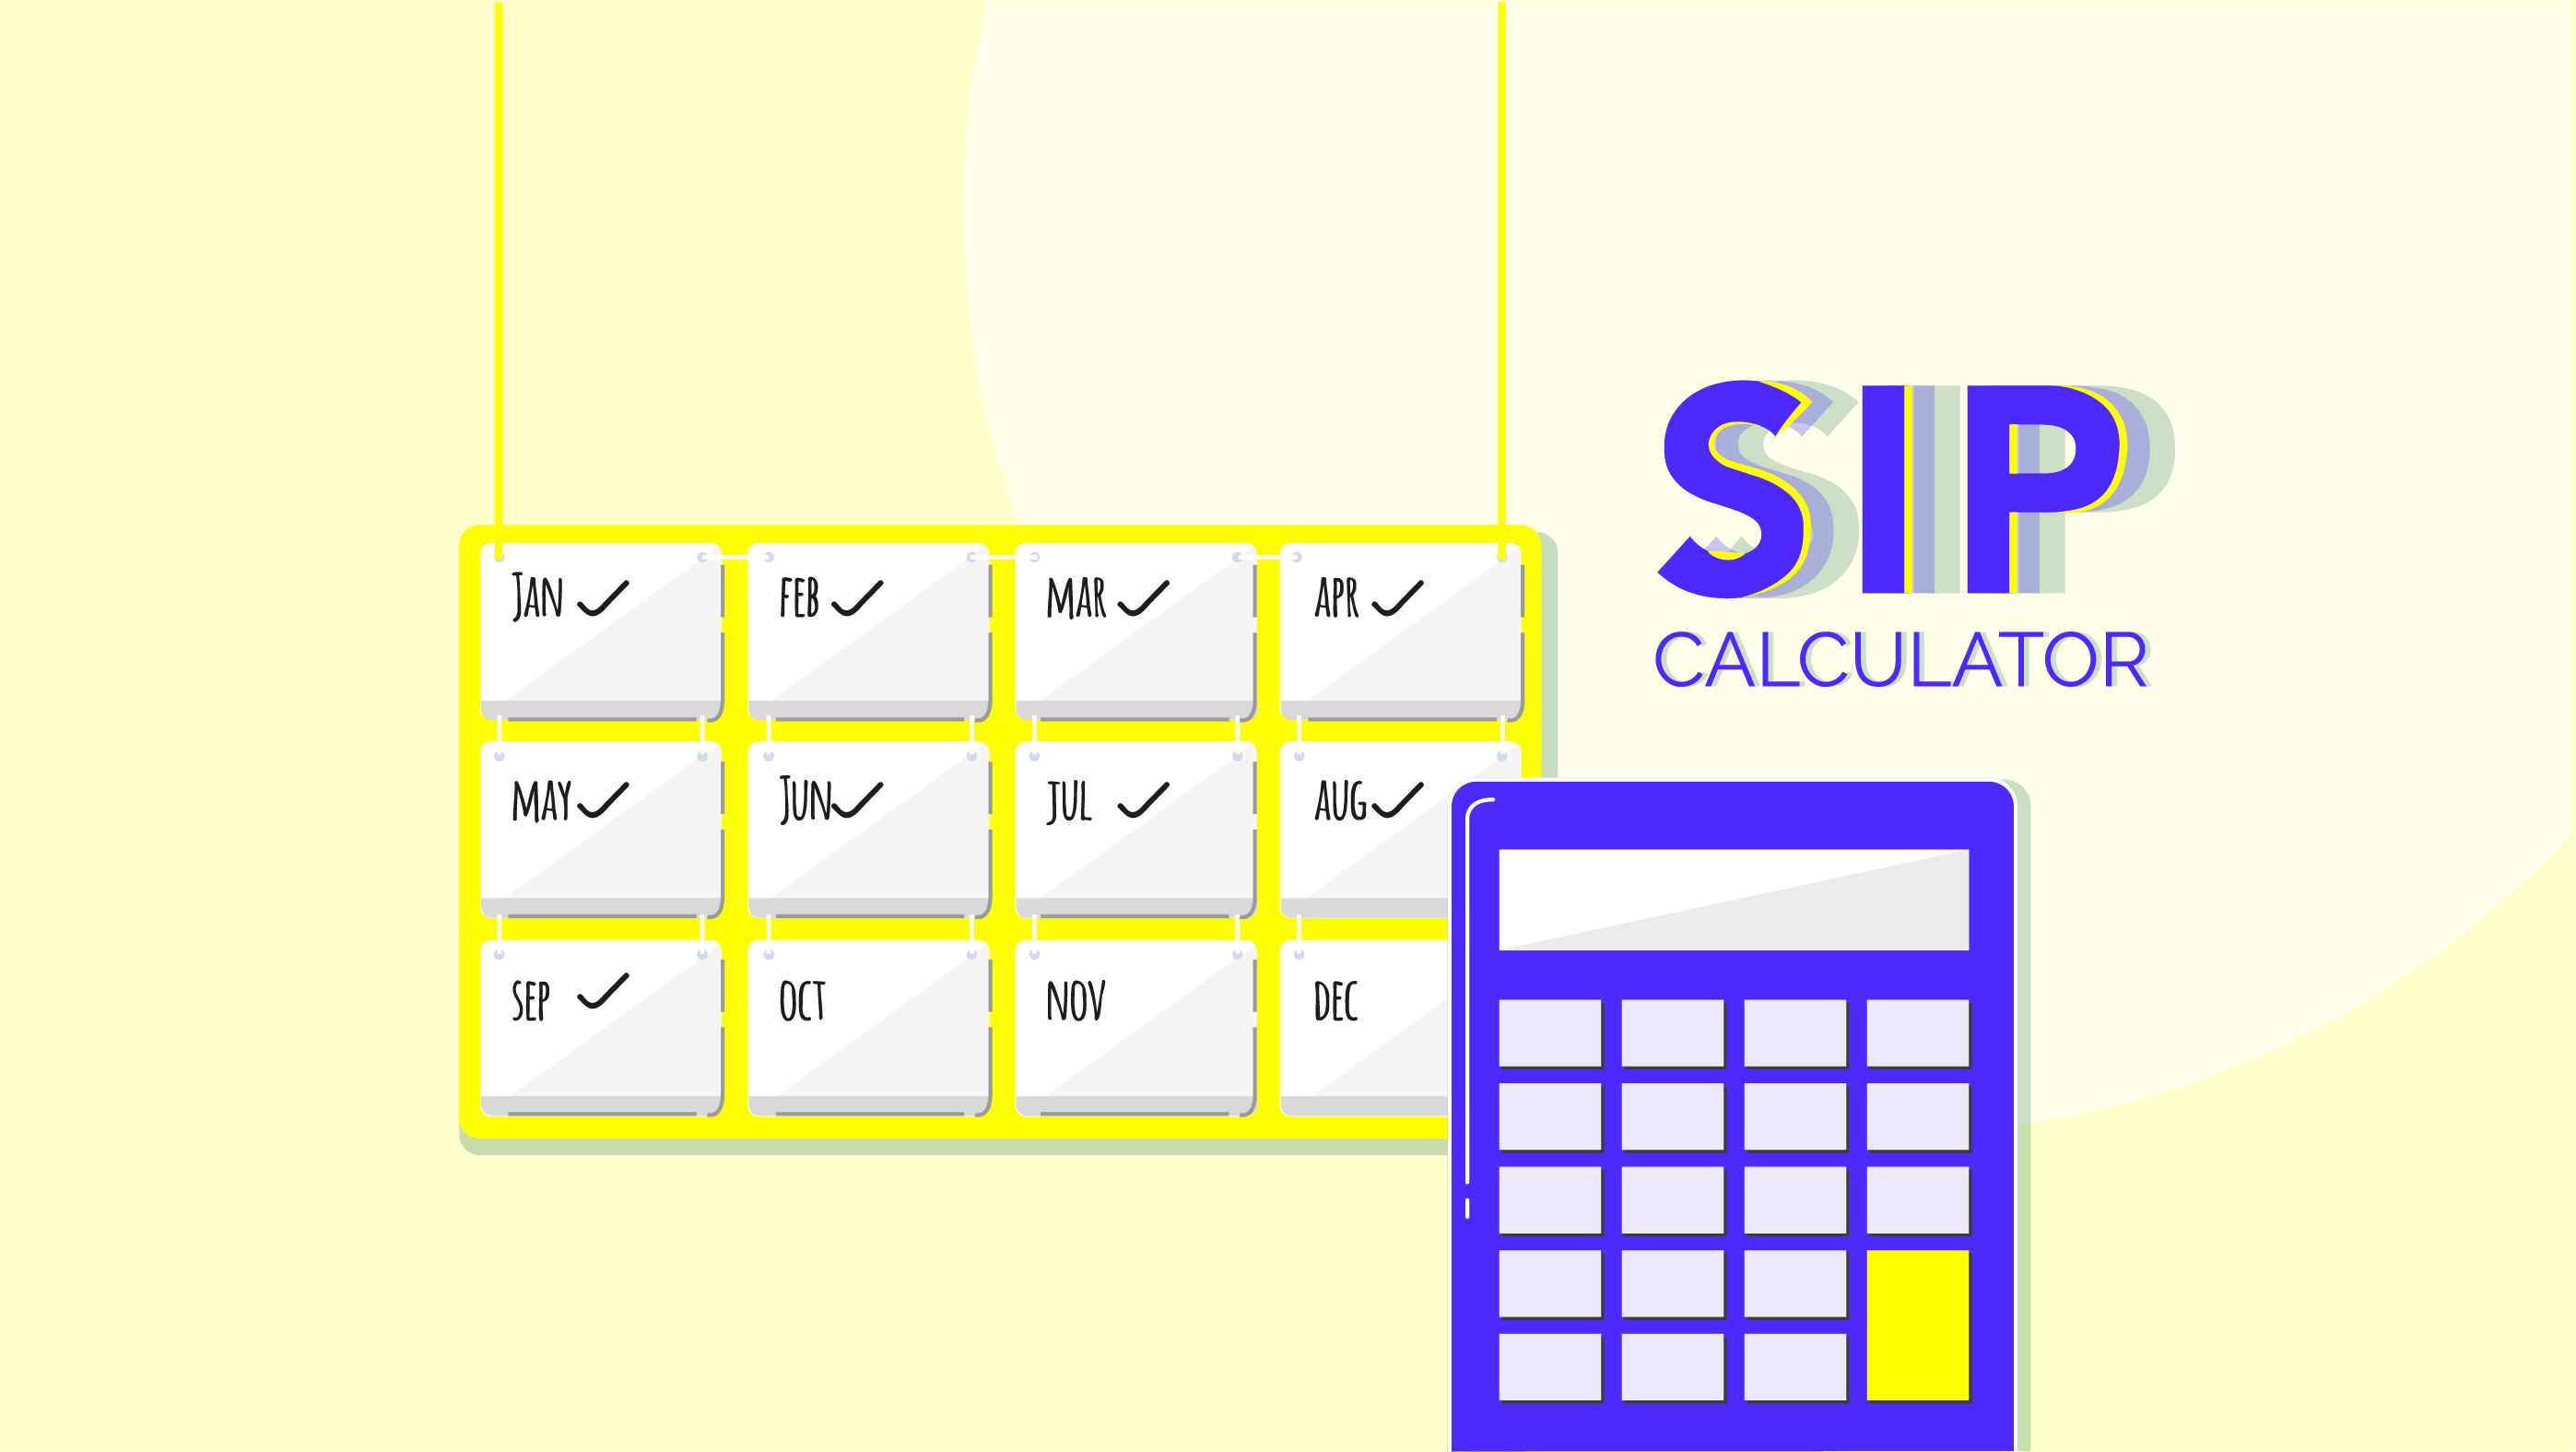 How to use SIP calculator